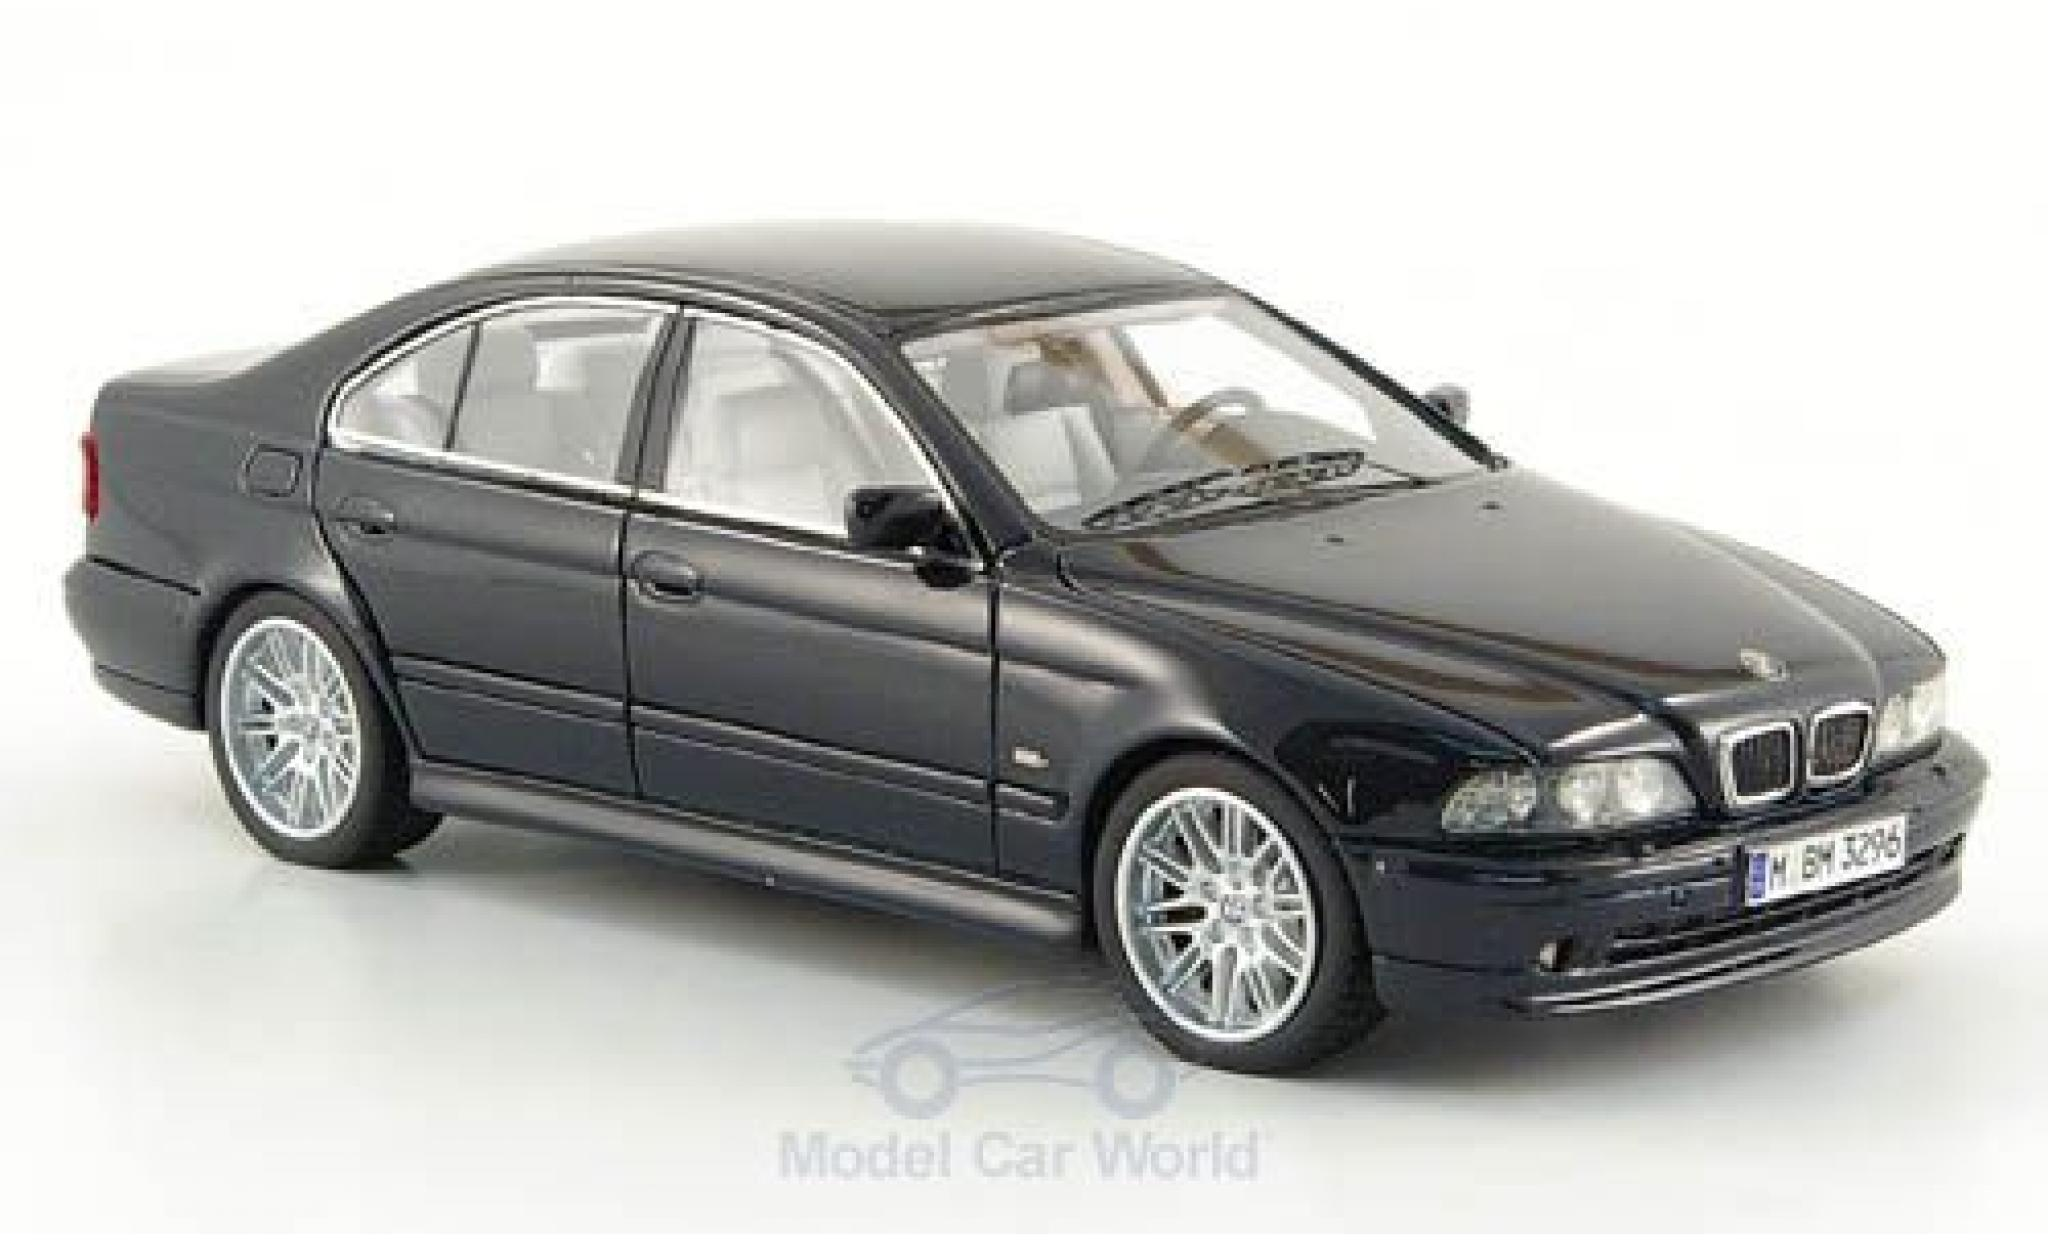 Diecast Model Cars Bmw 530 1 43 Neo I E39 Metallise Black 2002 Alldiecast Us